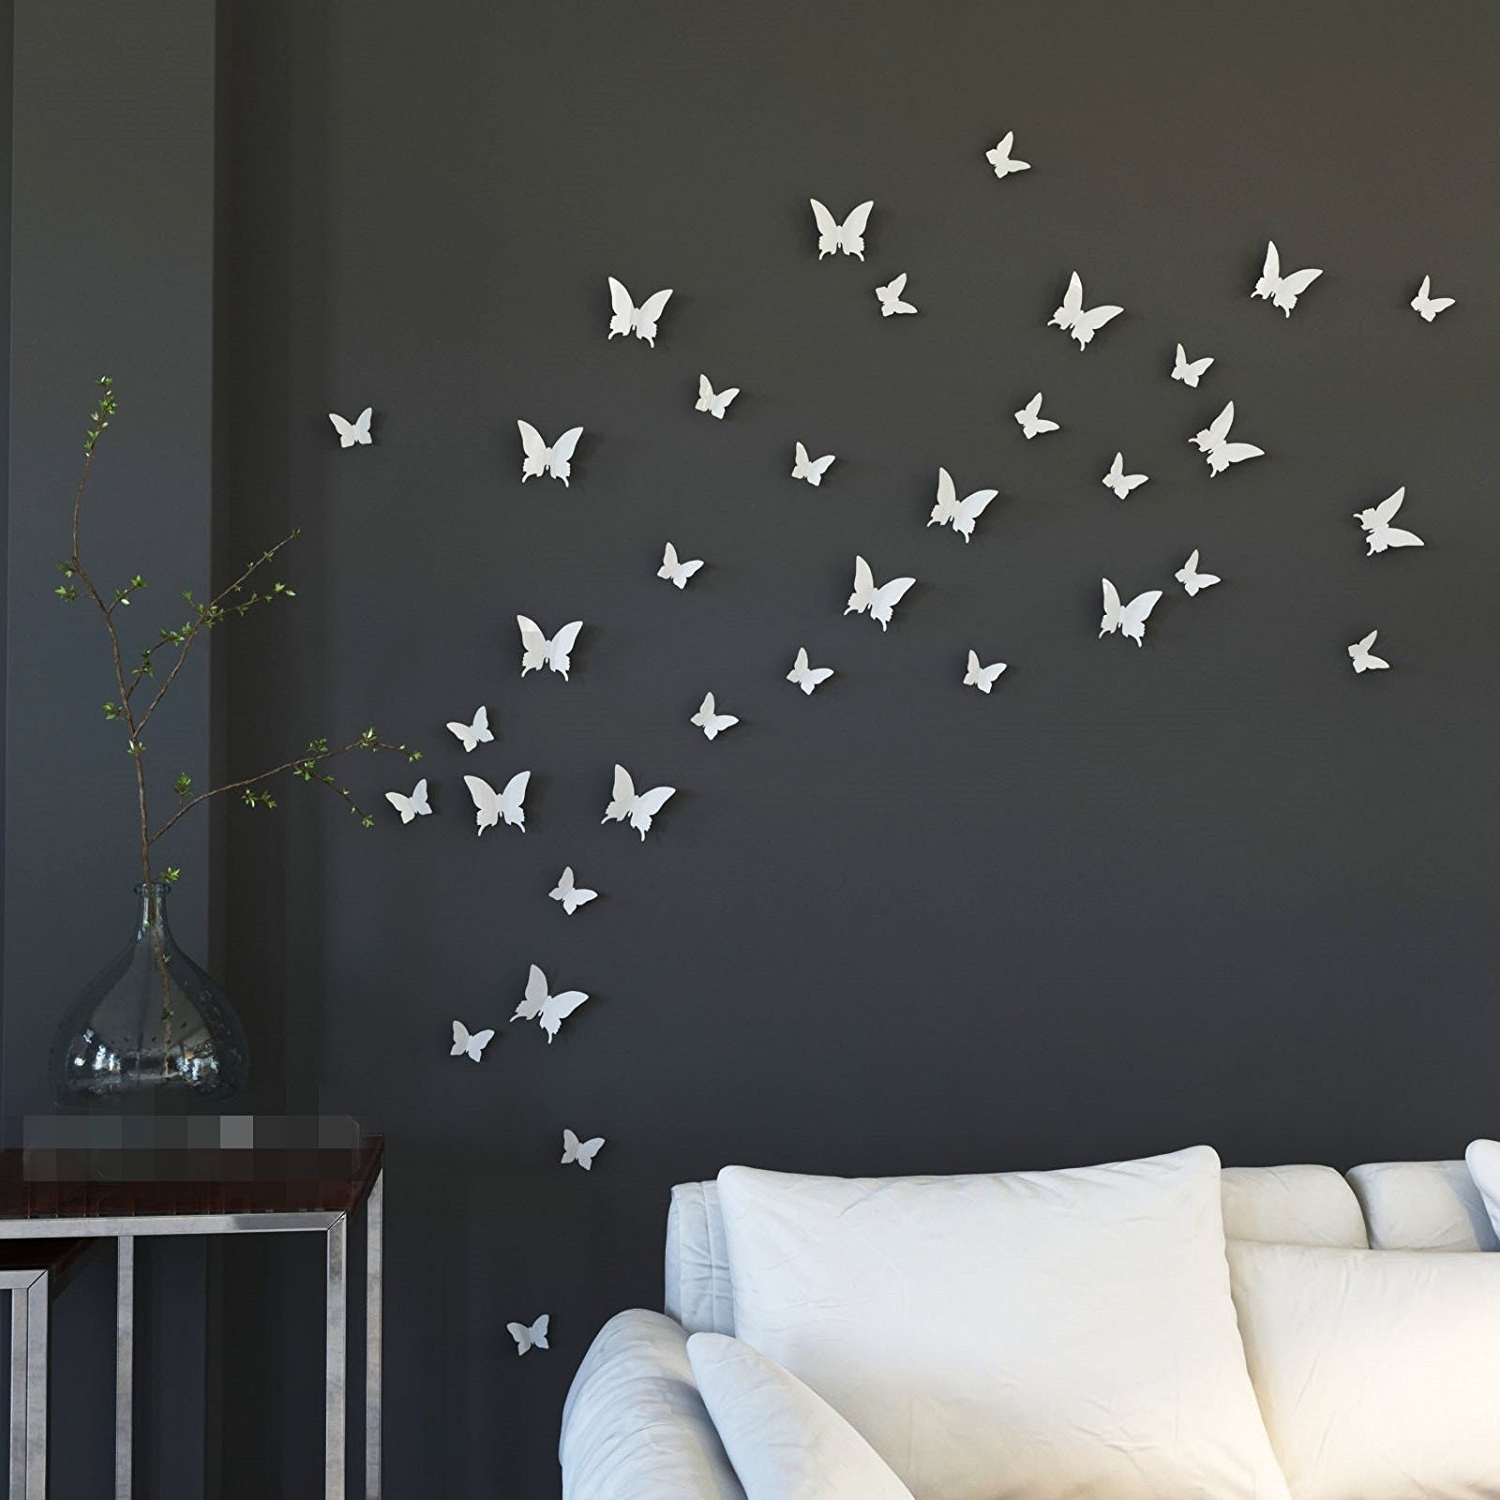 White 3D Butterfly Wall Art Within Well Known Mariposa Appear In Gossip Girl 12Pcs/pack 3D Decorative (View 14 of 15)